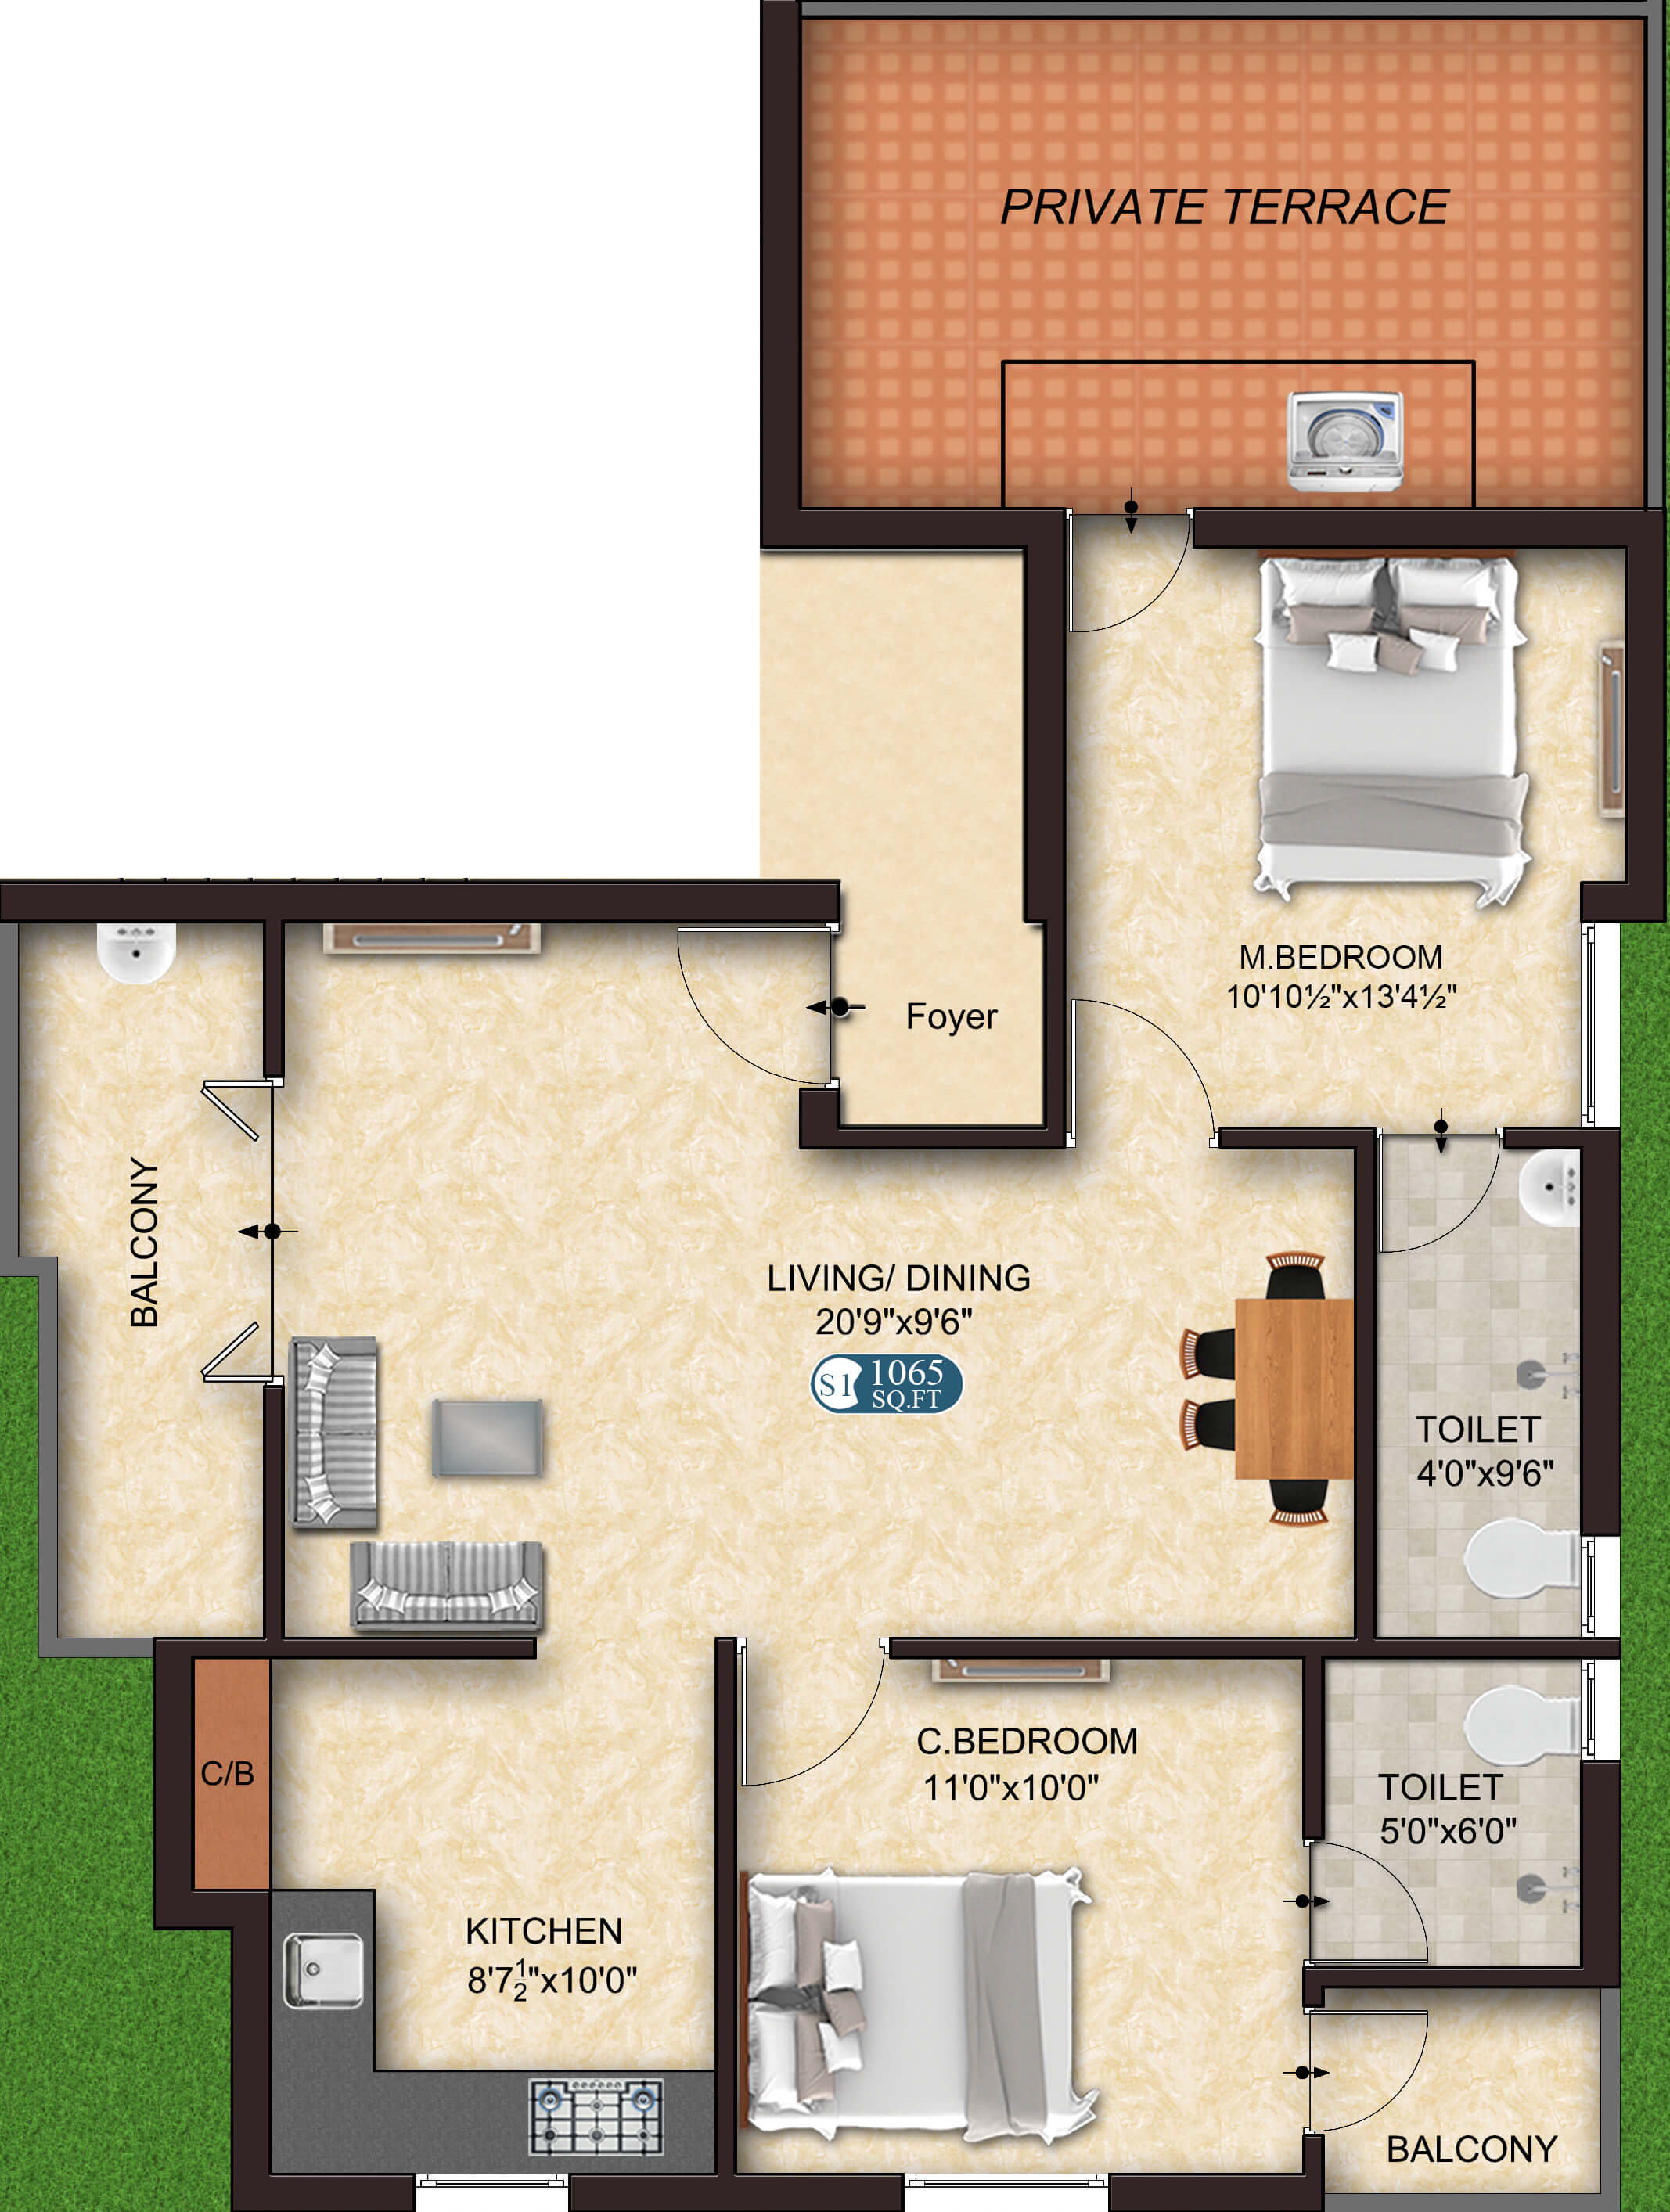 Style S1 2BHK 1065 - budget flats for sale in OMR